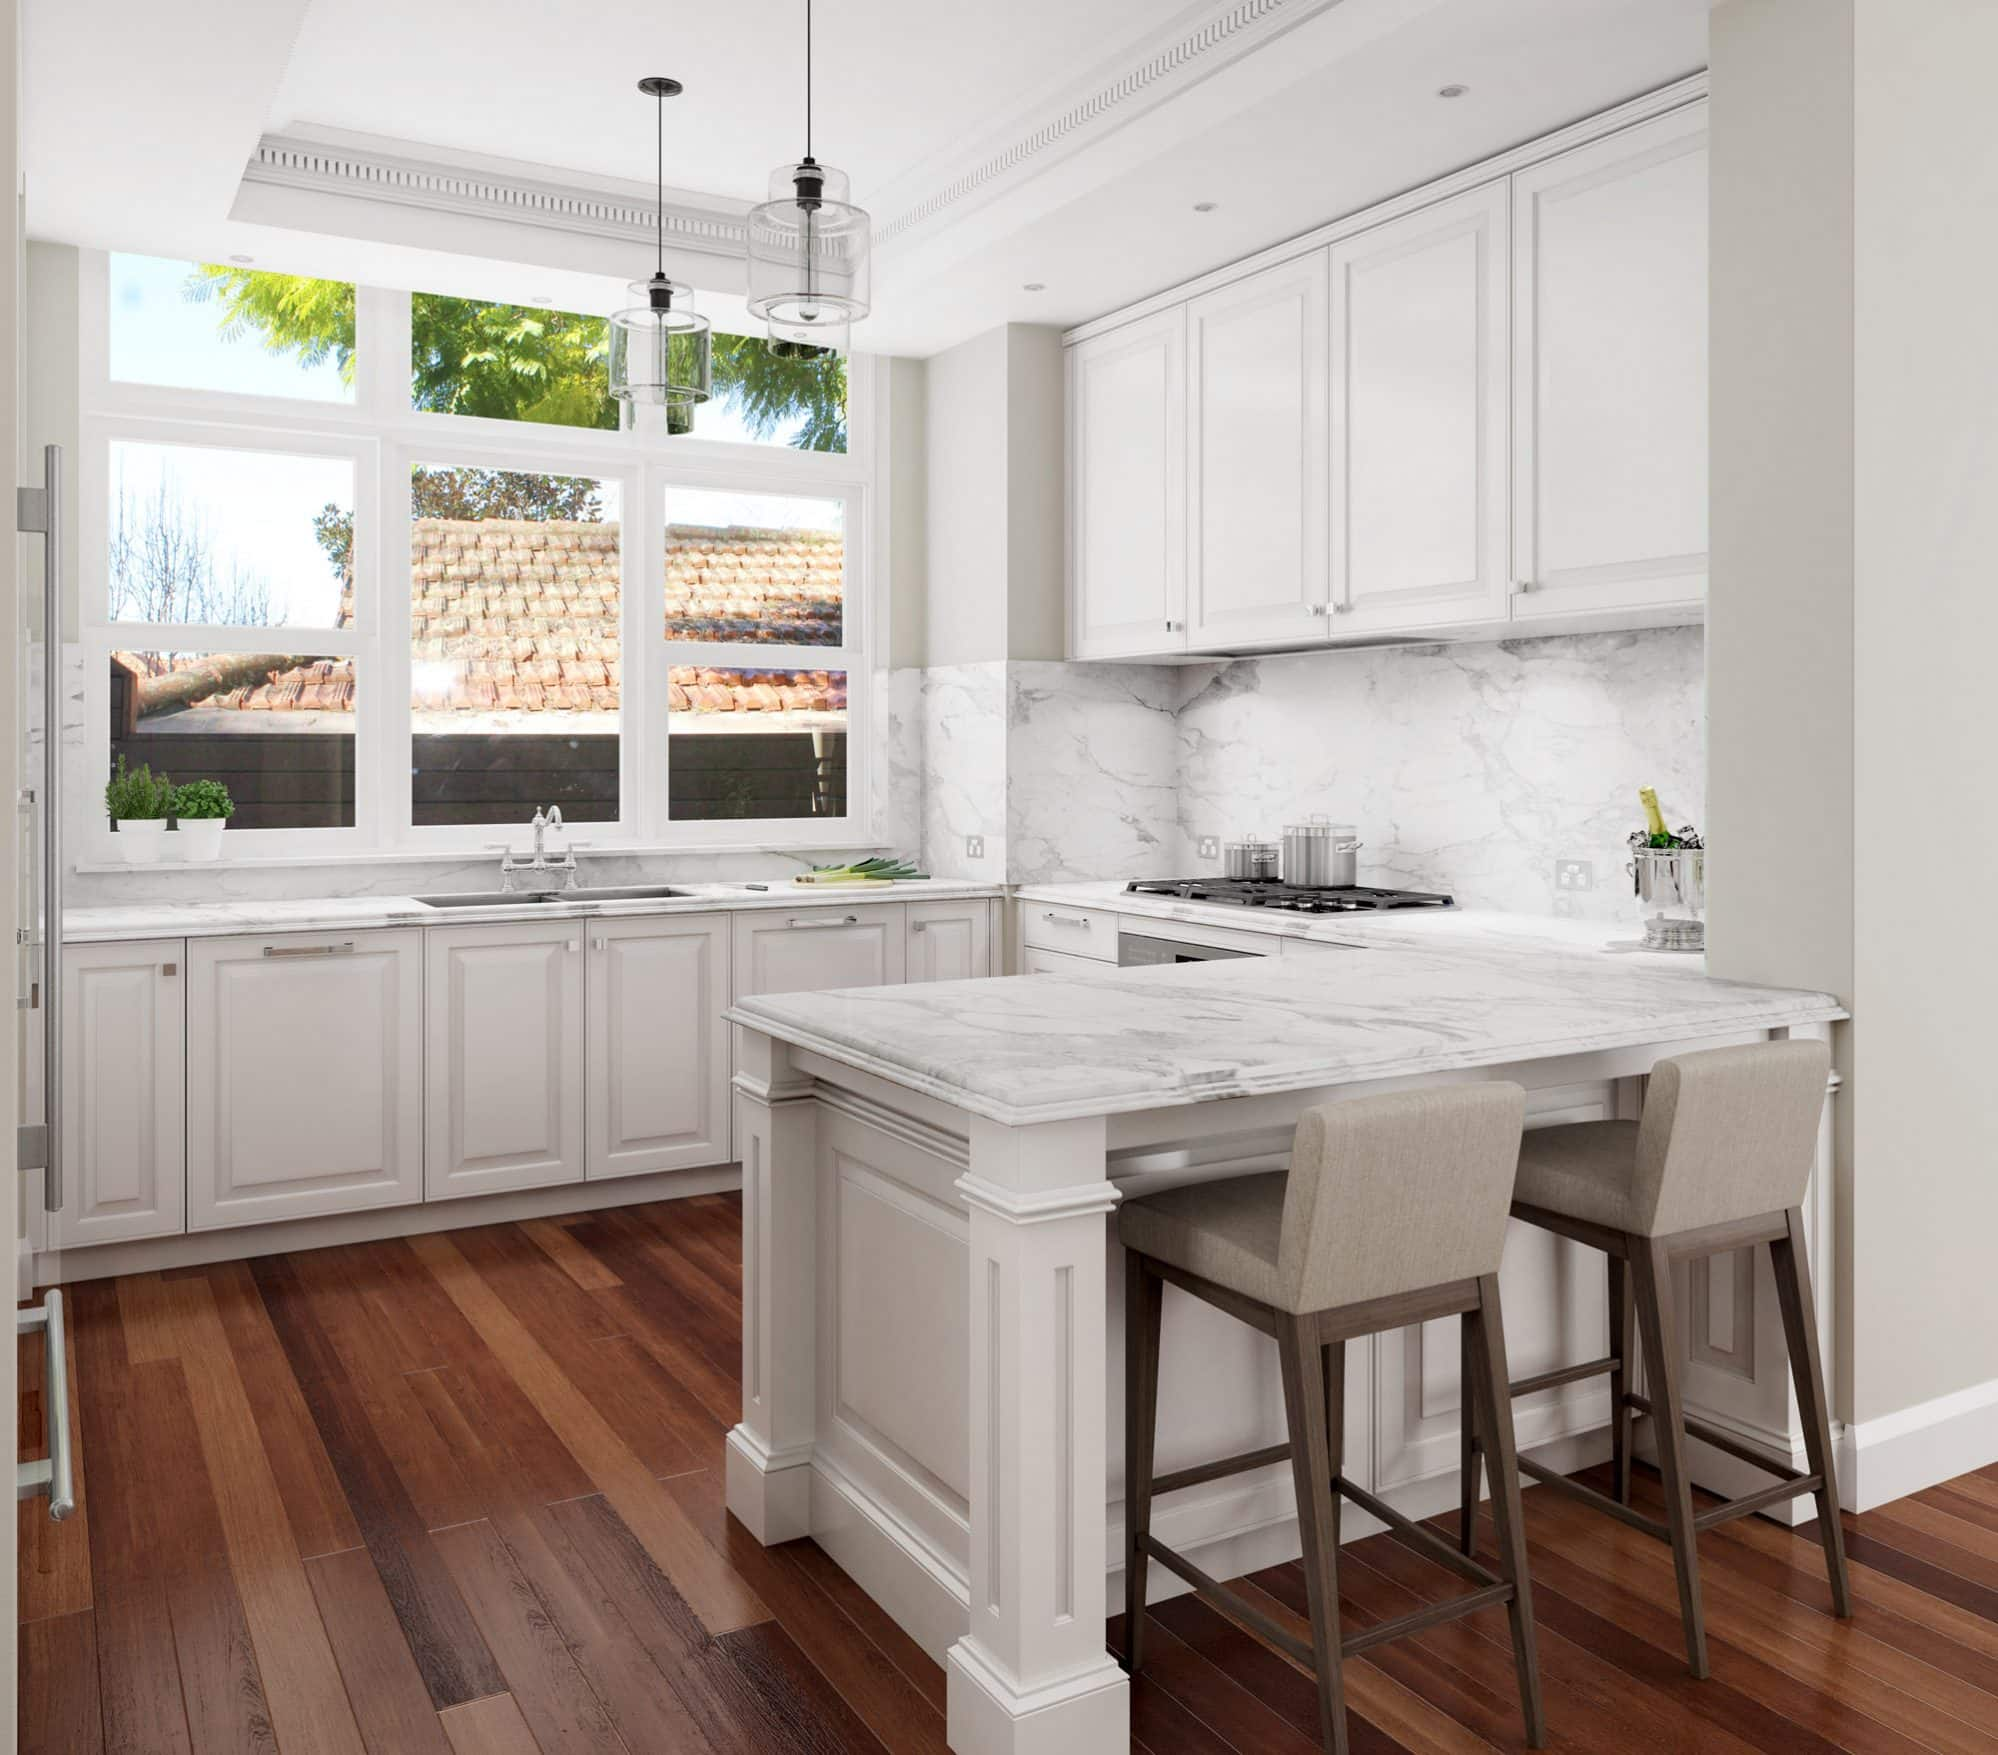 Hamptons Style Luxury Kitchen Design | Kitchen Design ...